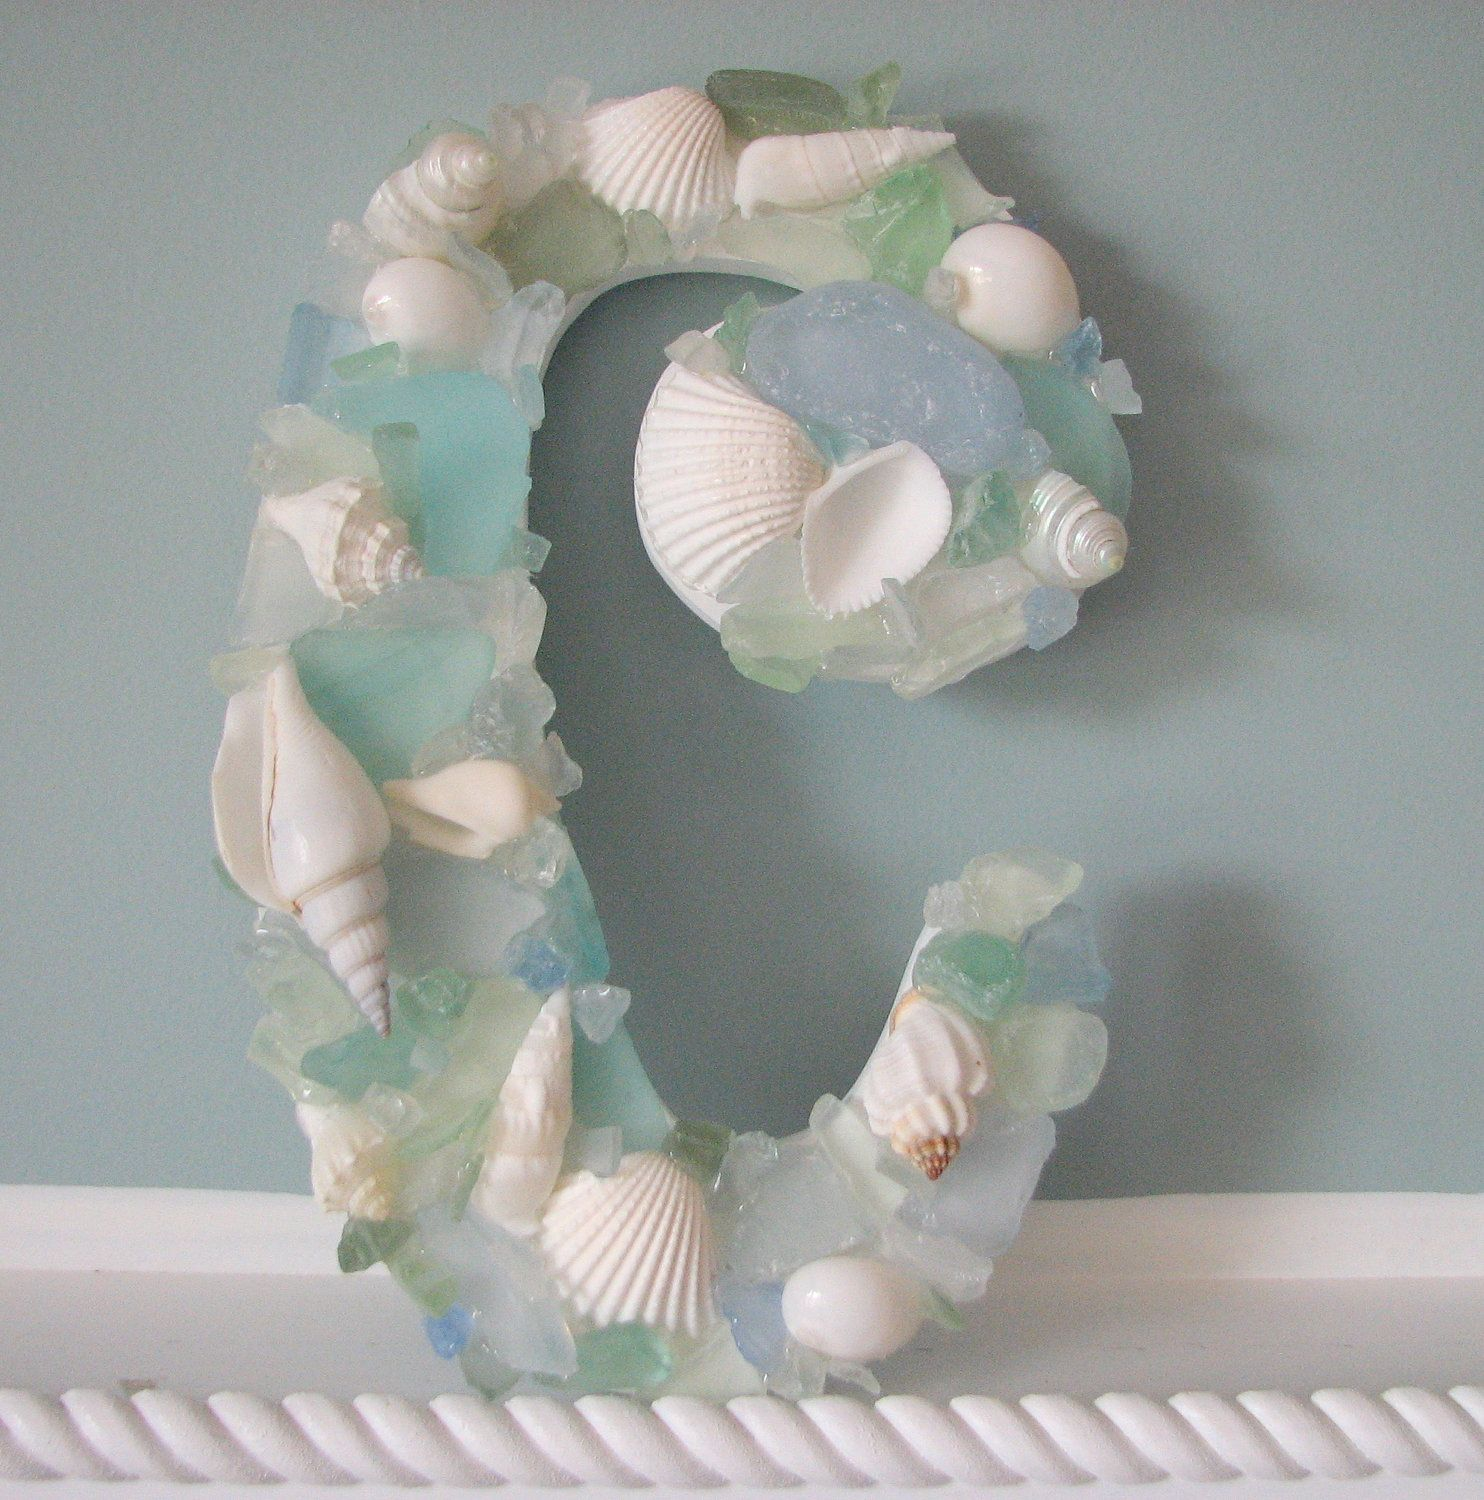 Glass Letters For Wall Seashell Wall Decor  Shell Wall Letters  Beach Decor Sea Glass